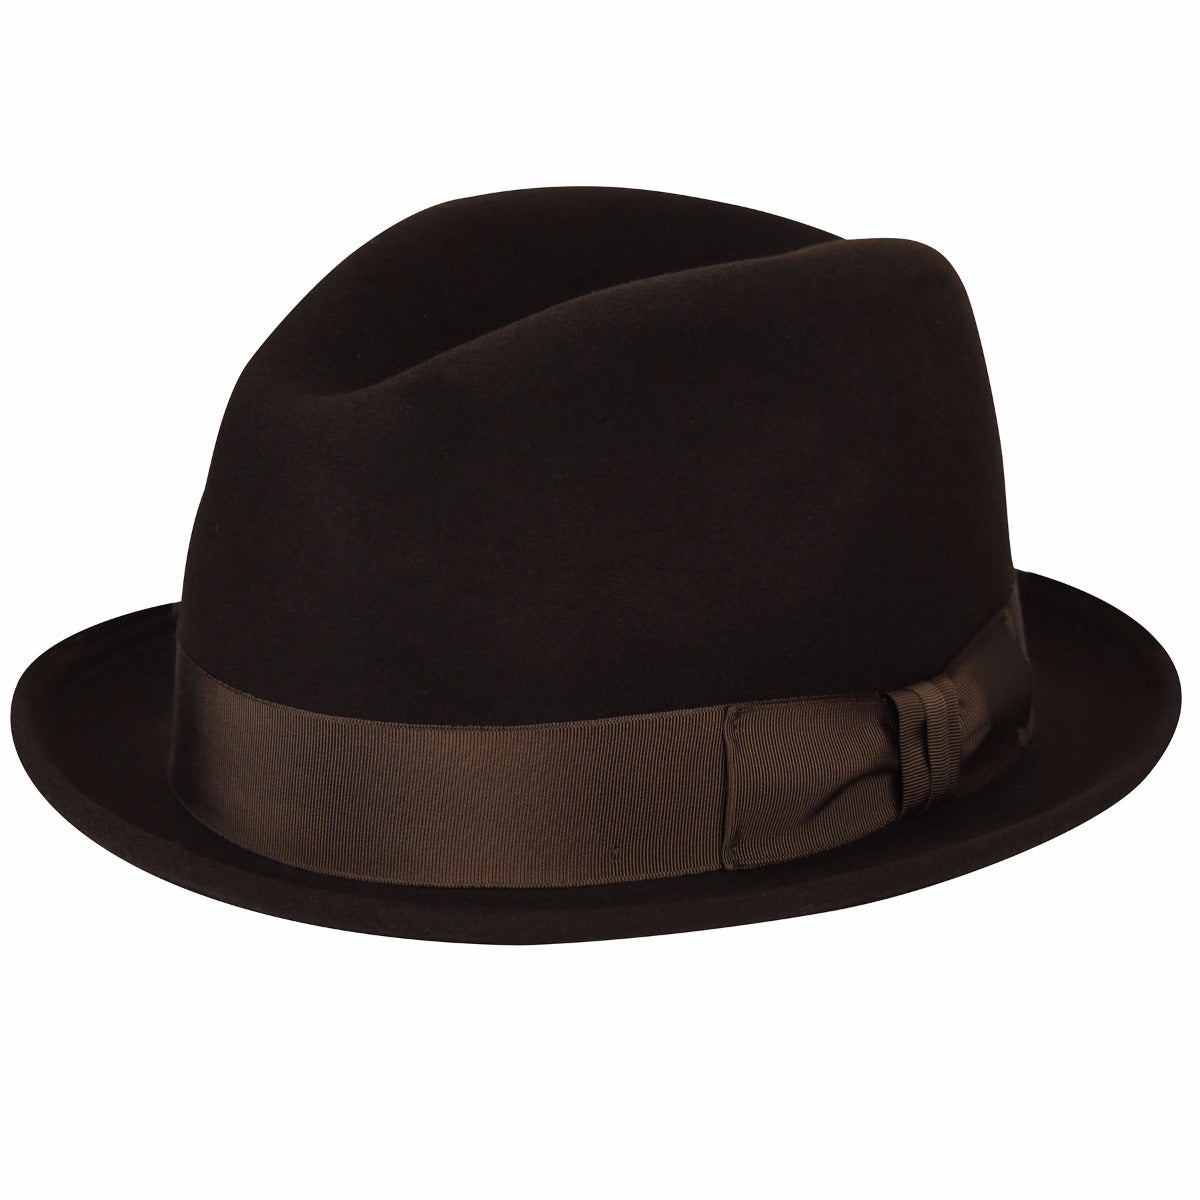 1960s – 70s Style Men's Hats Floyd Fedora $58.00 AT vintagedancer.com